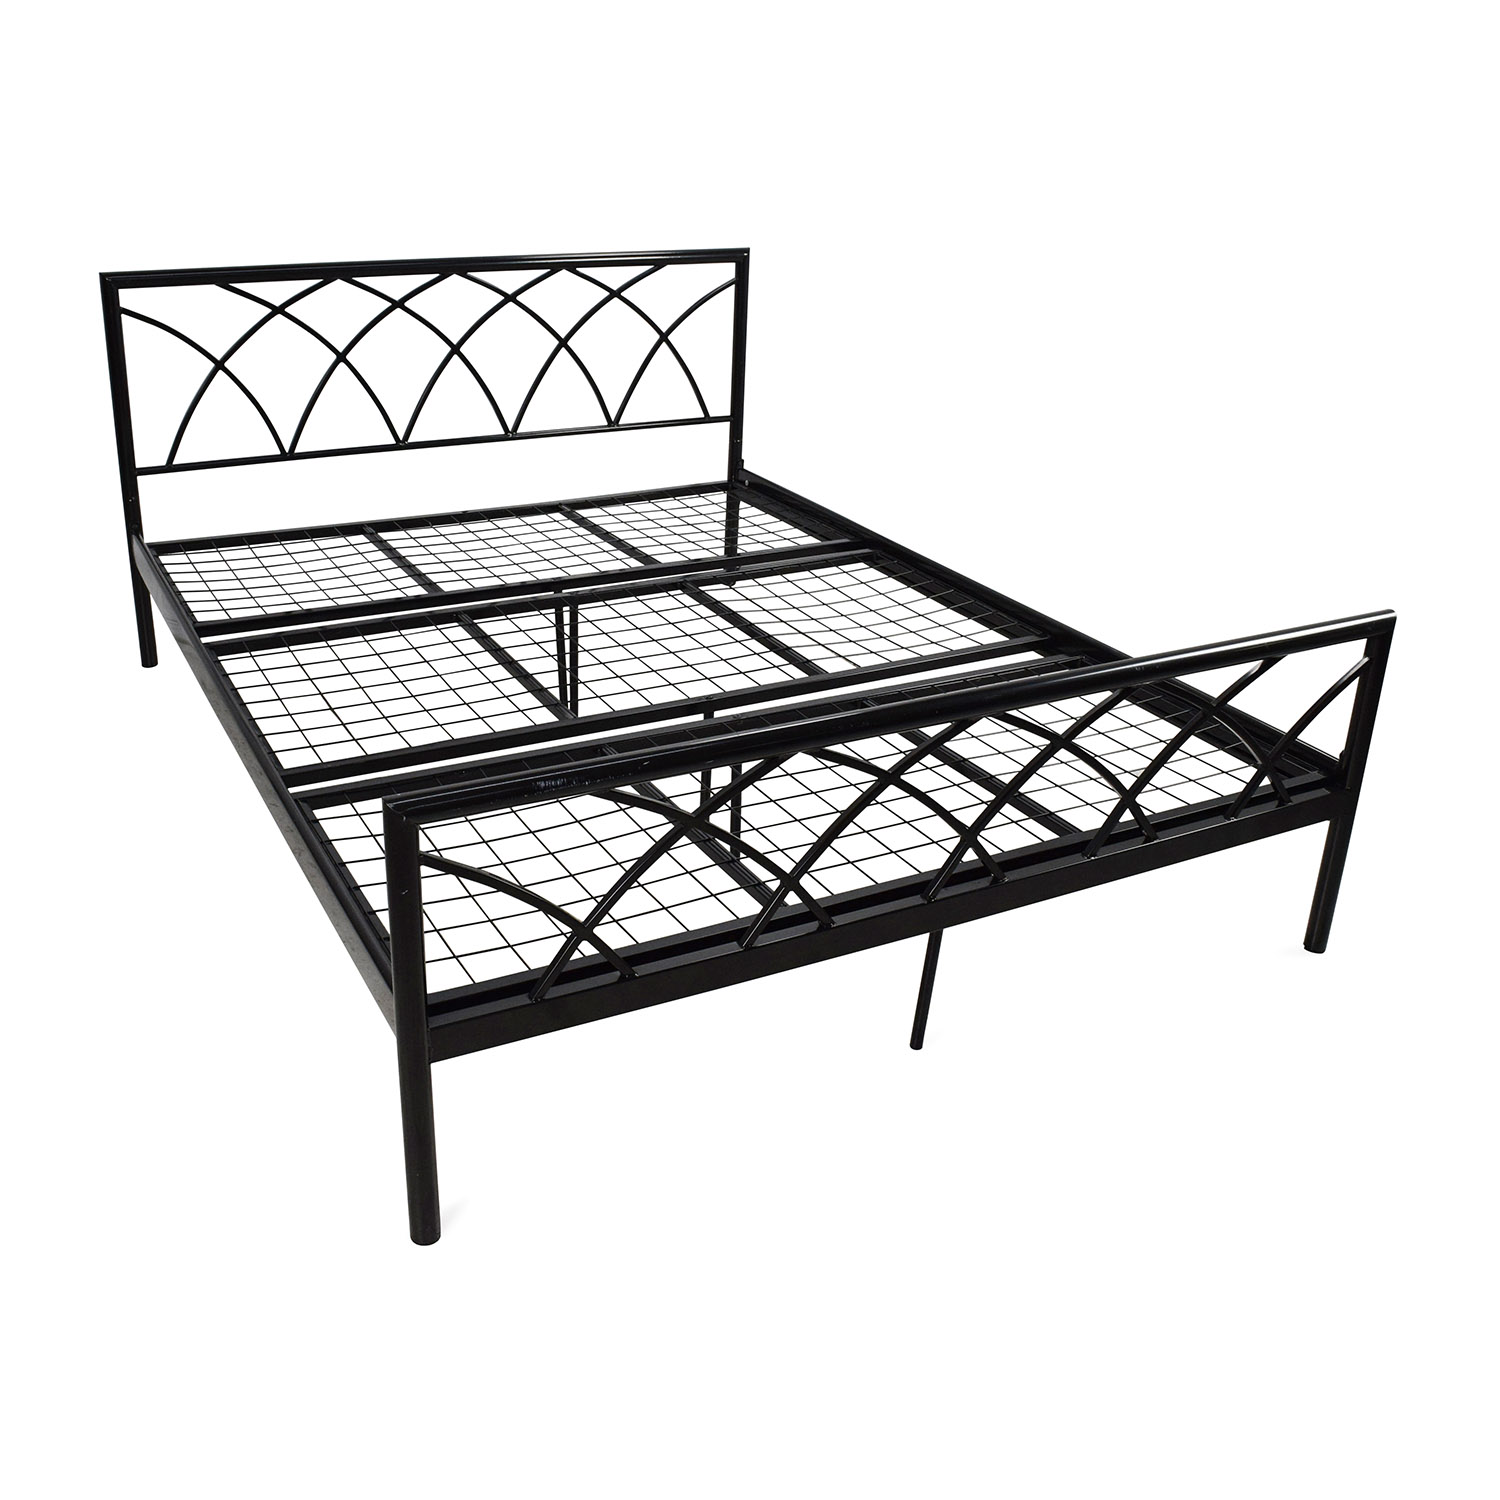 Queen Size Beds For Sale Bed And Bed Frame For Sale Full Size Bed